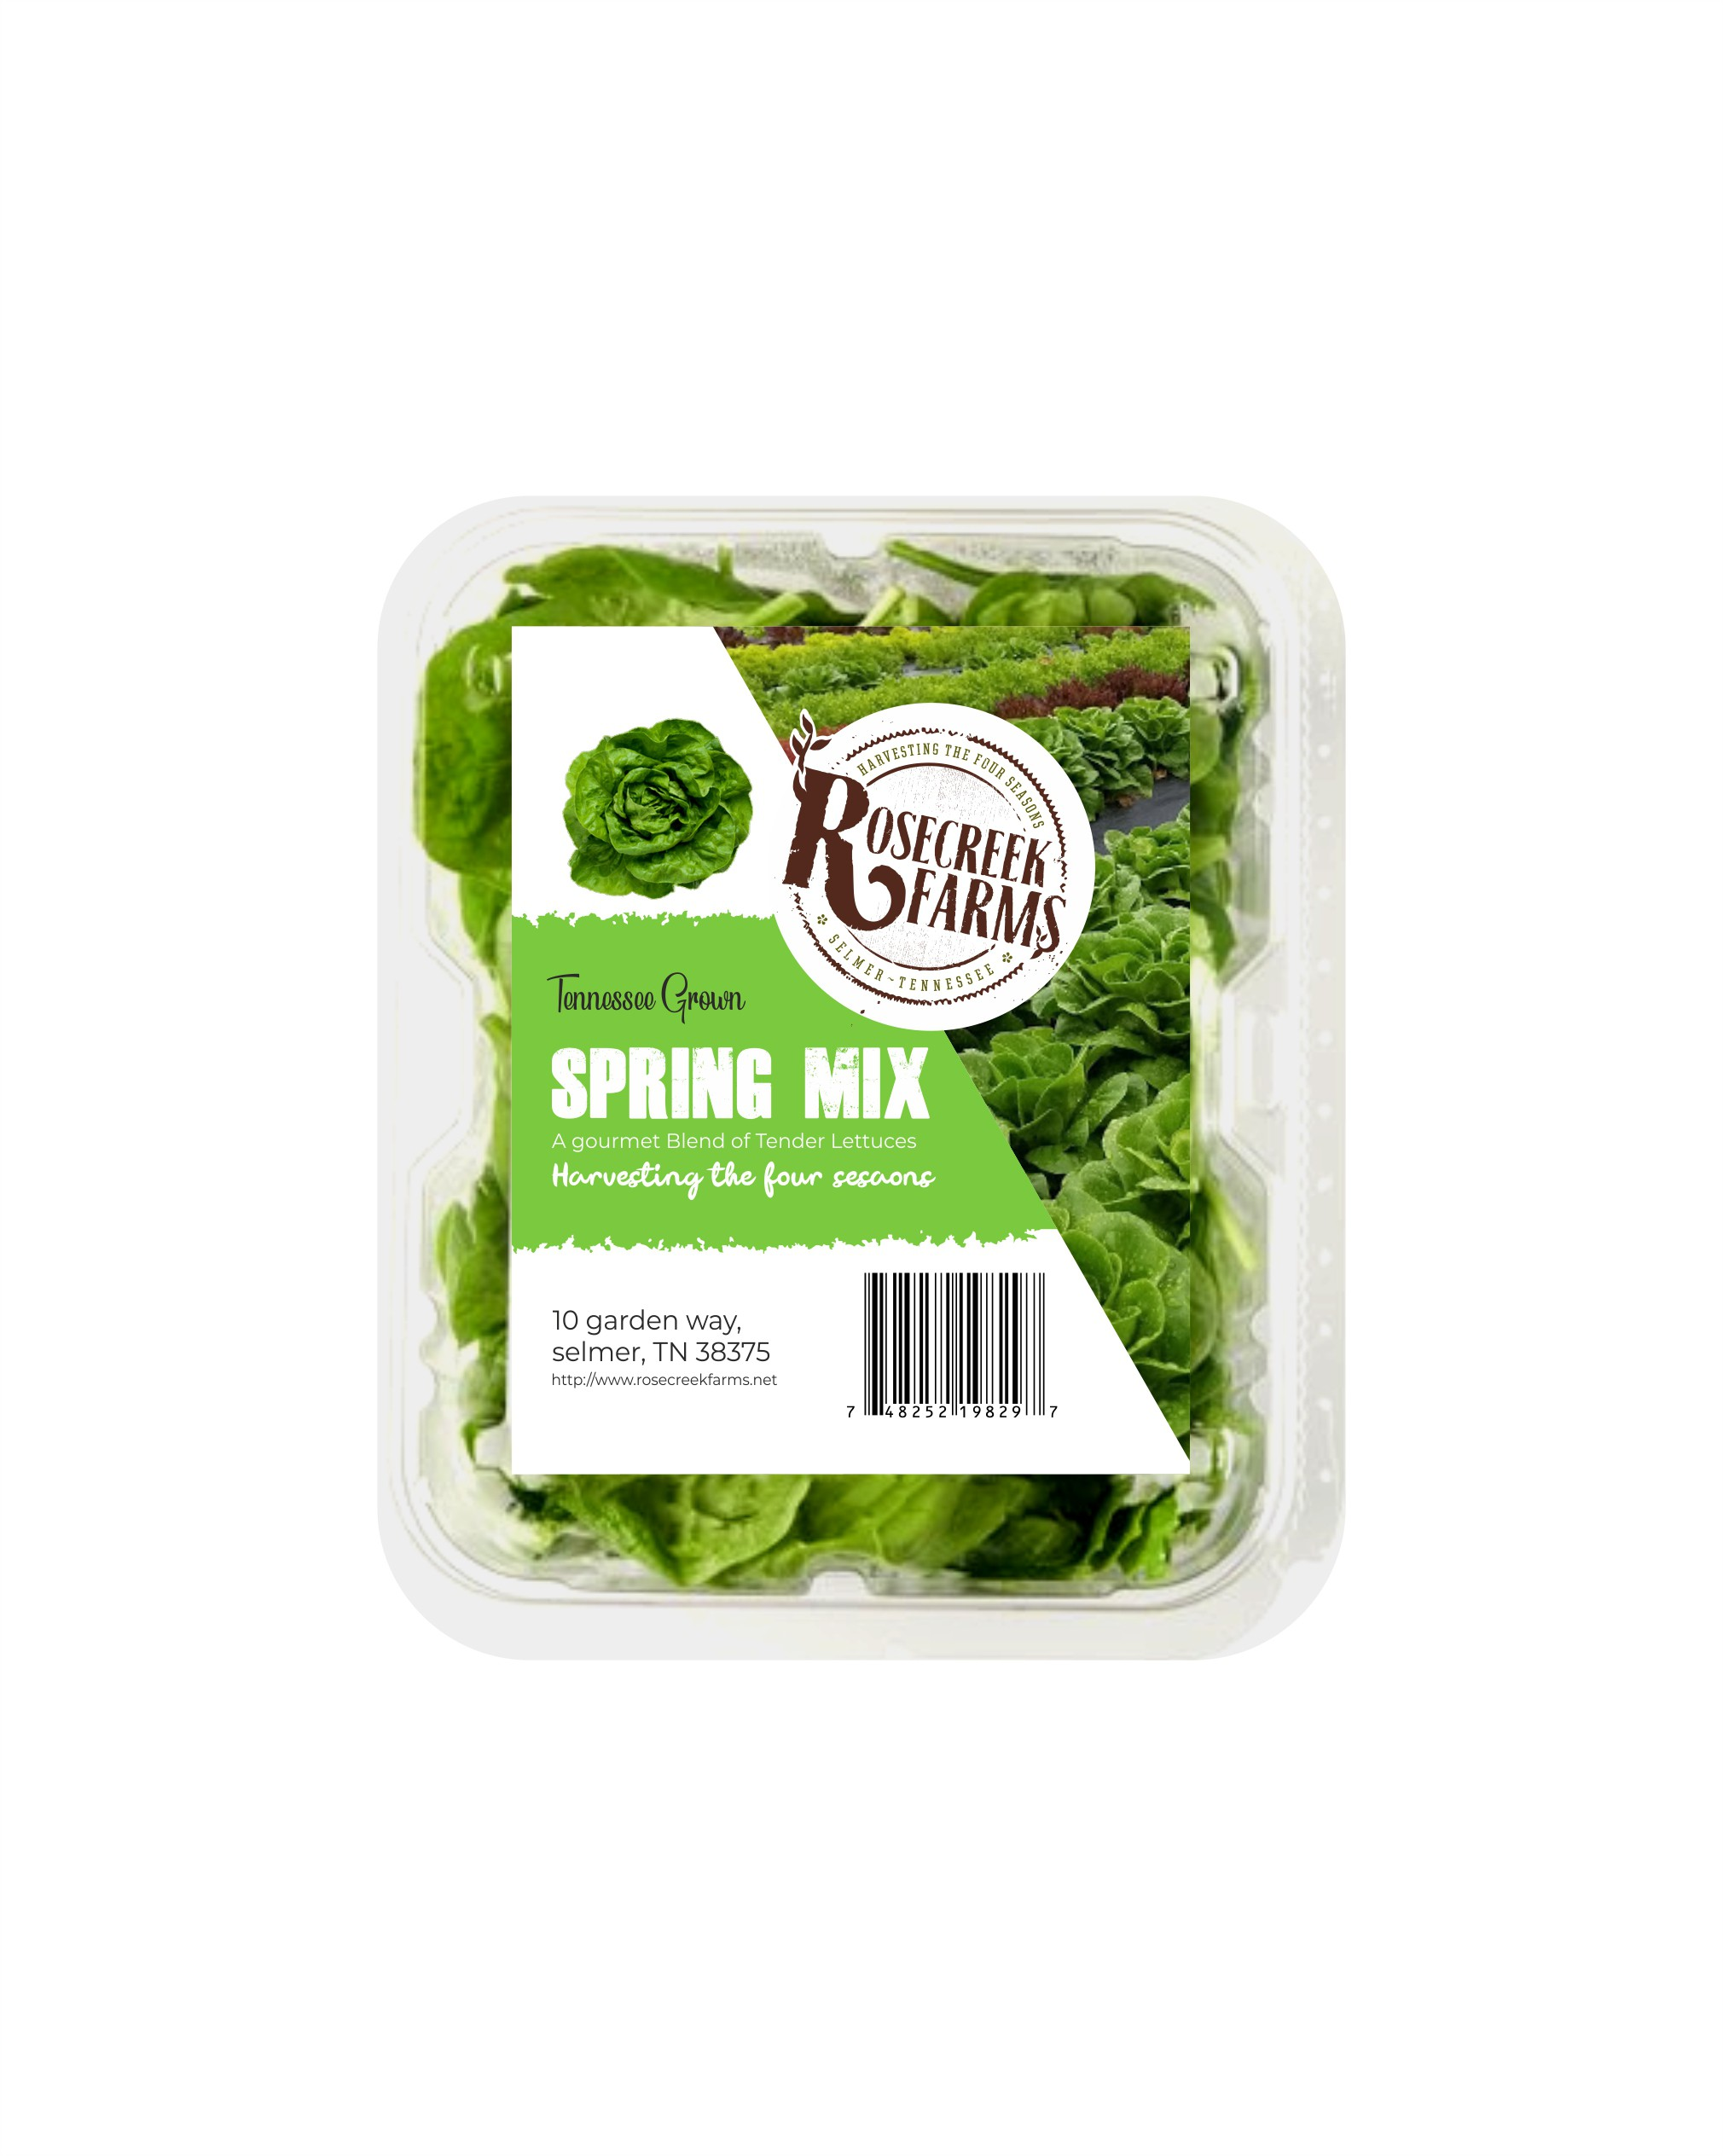 Spring Mix label for an Organic farm